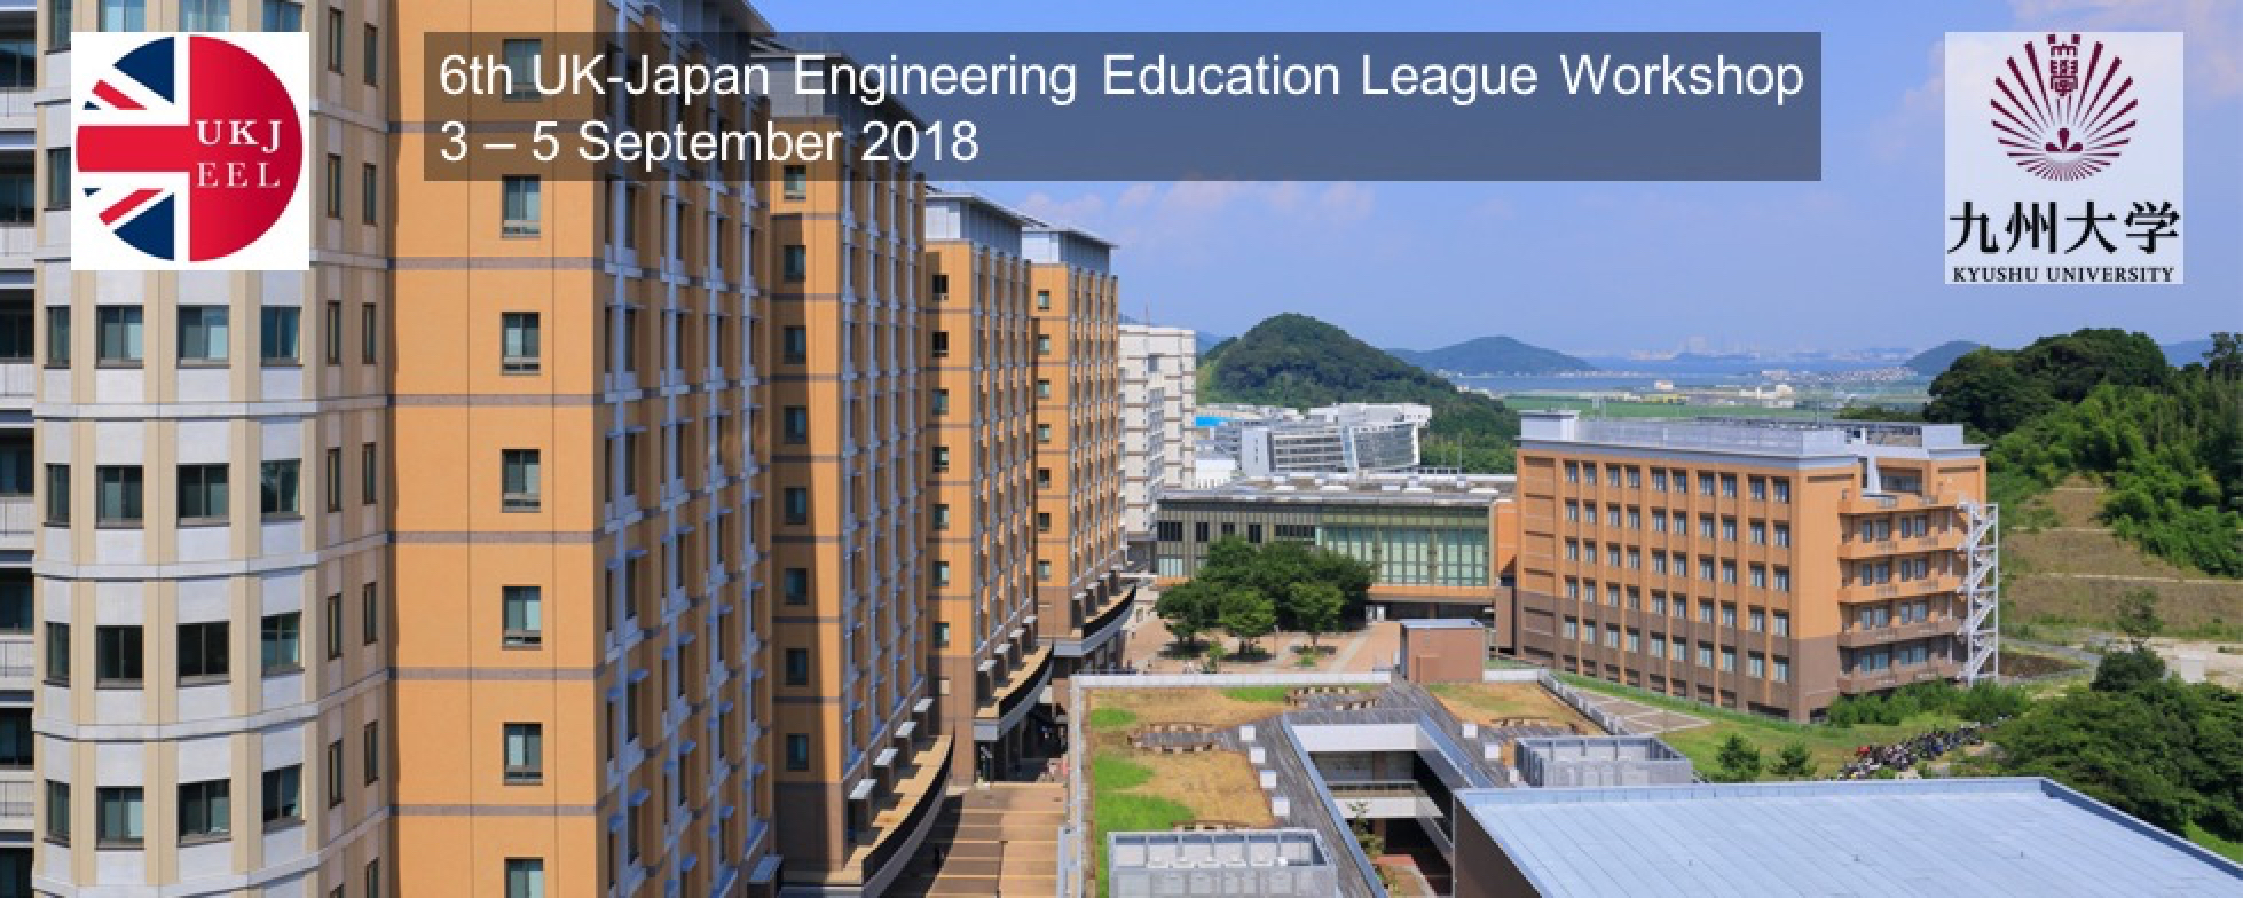 UK_Japan_Engineering_Education_League_Workshop_2018_main_image